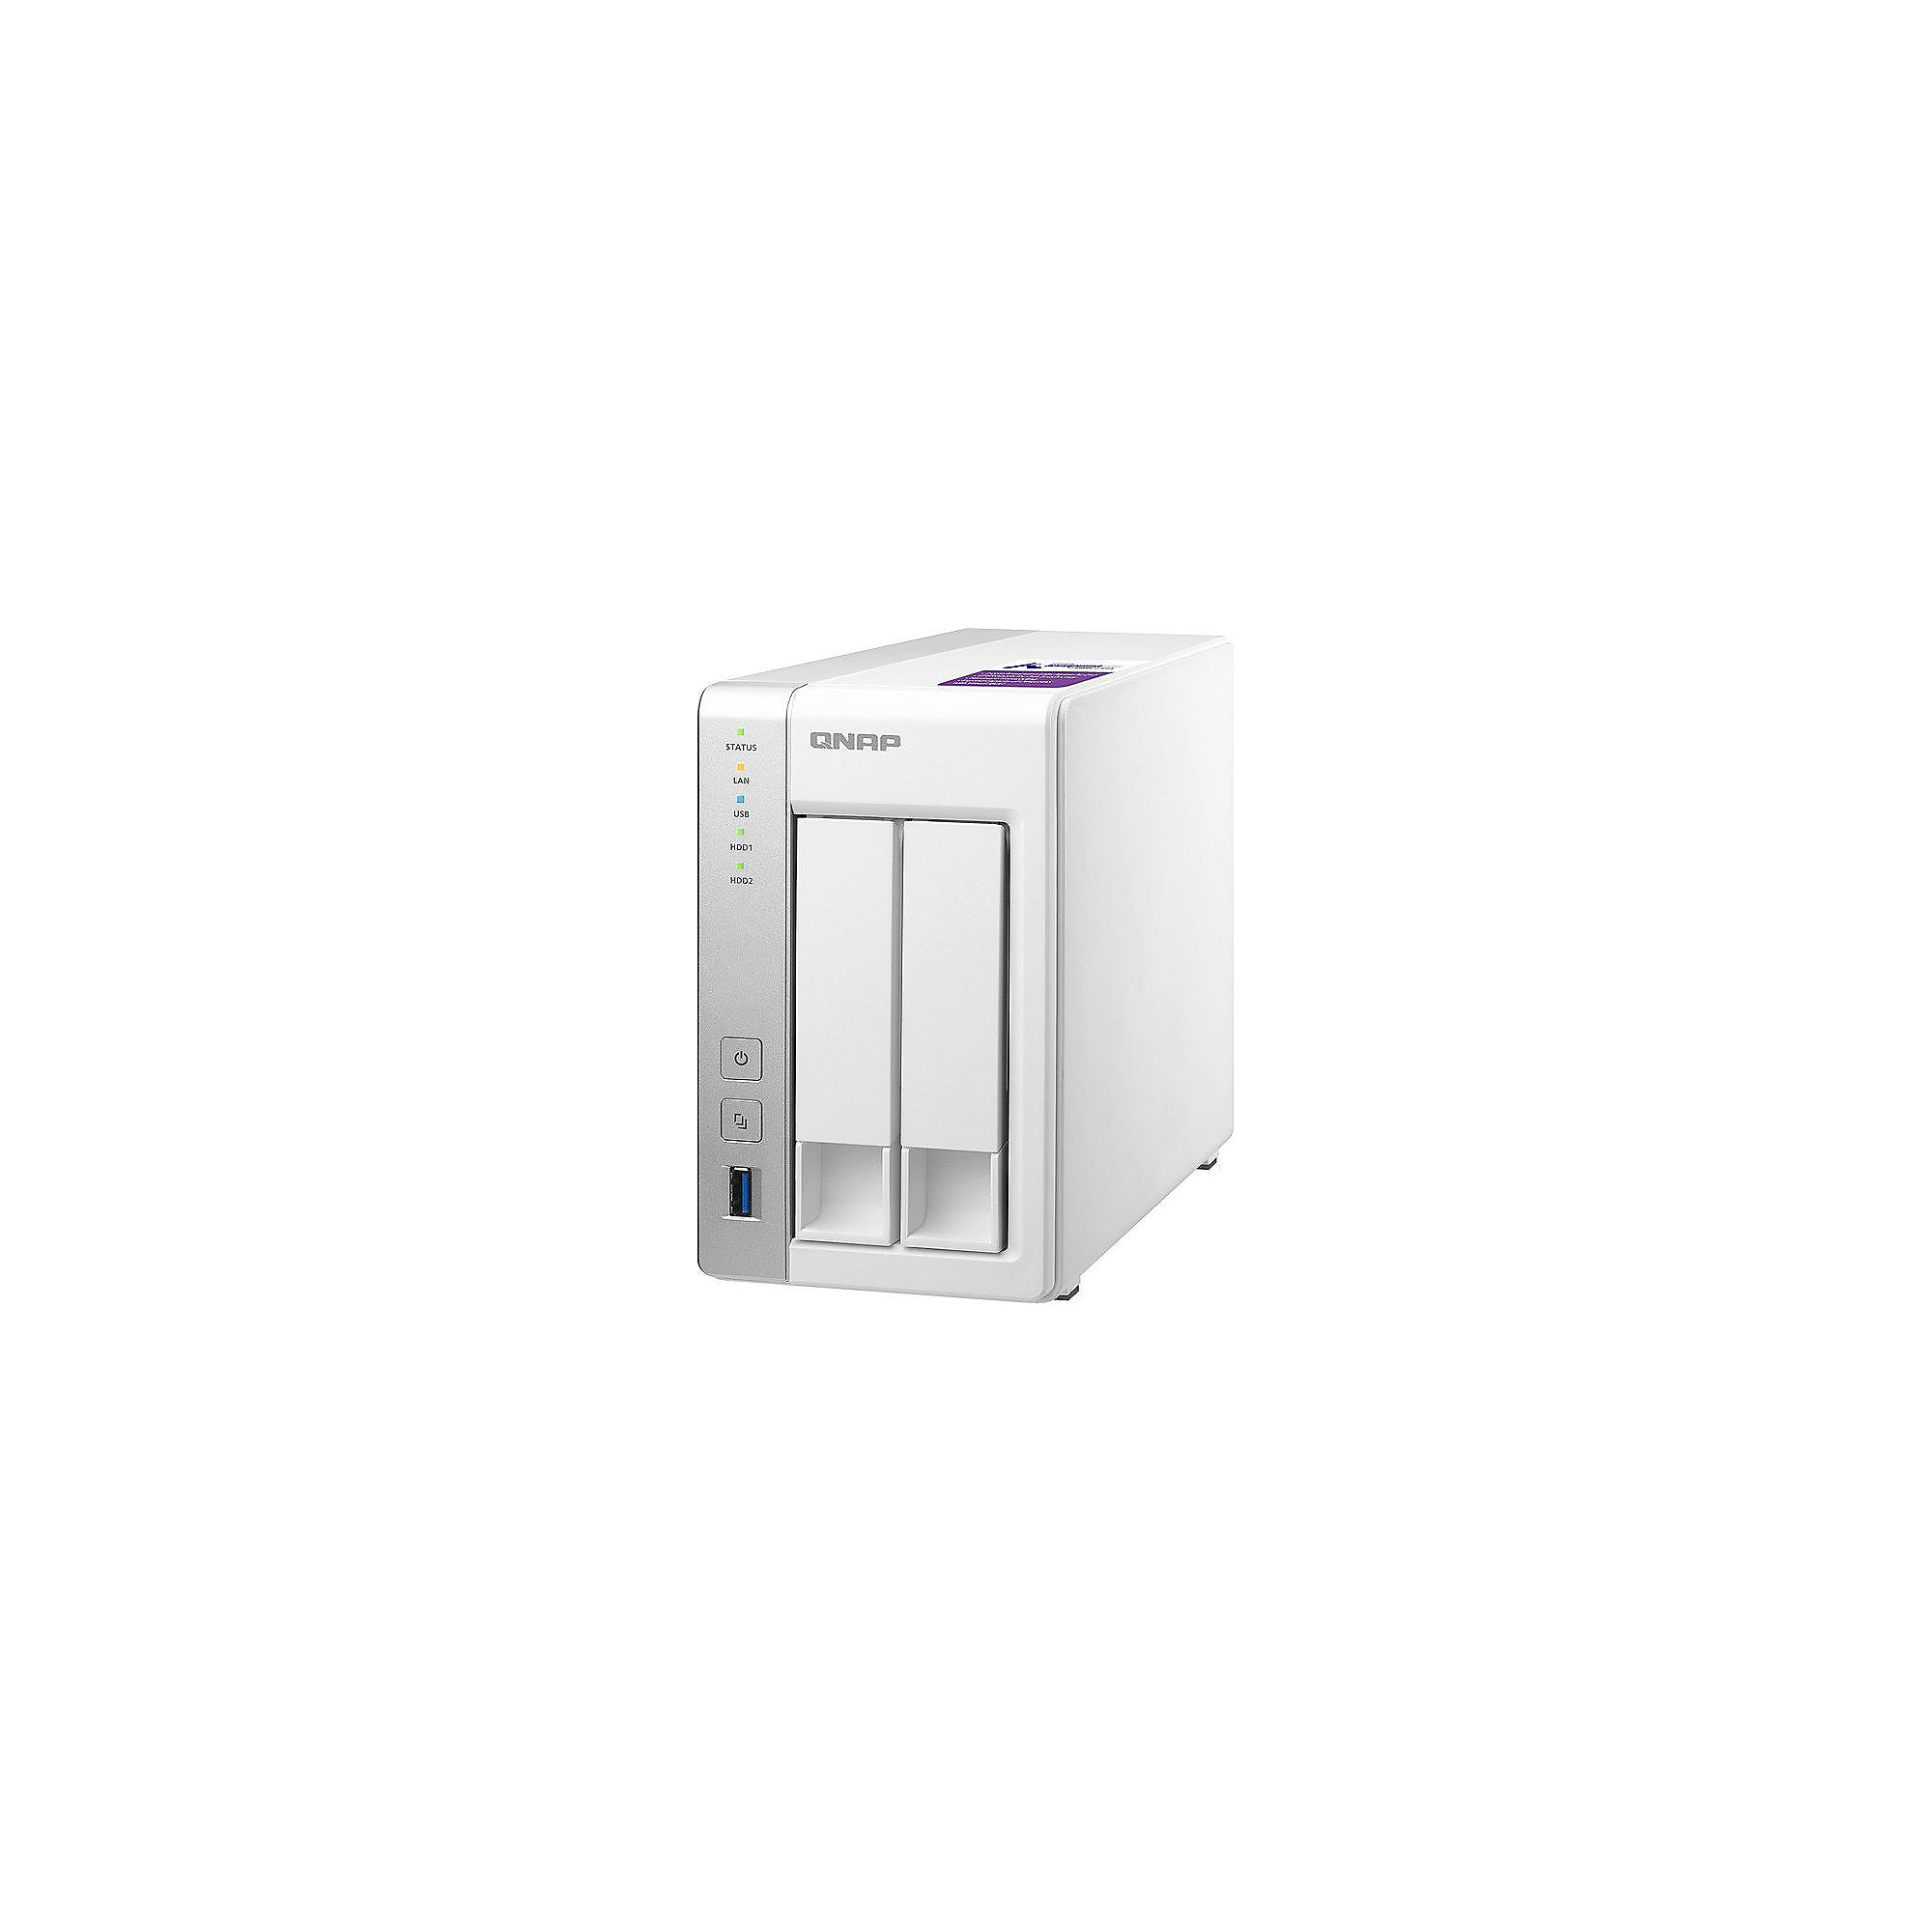 QNAP TS-231P NAS System 2-Bay 6TB inkl. 2x 3TB Seagate ST3000VN007